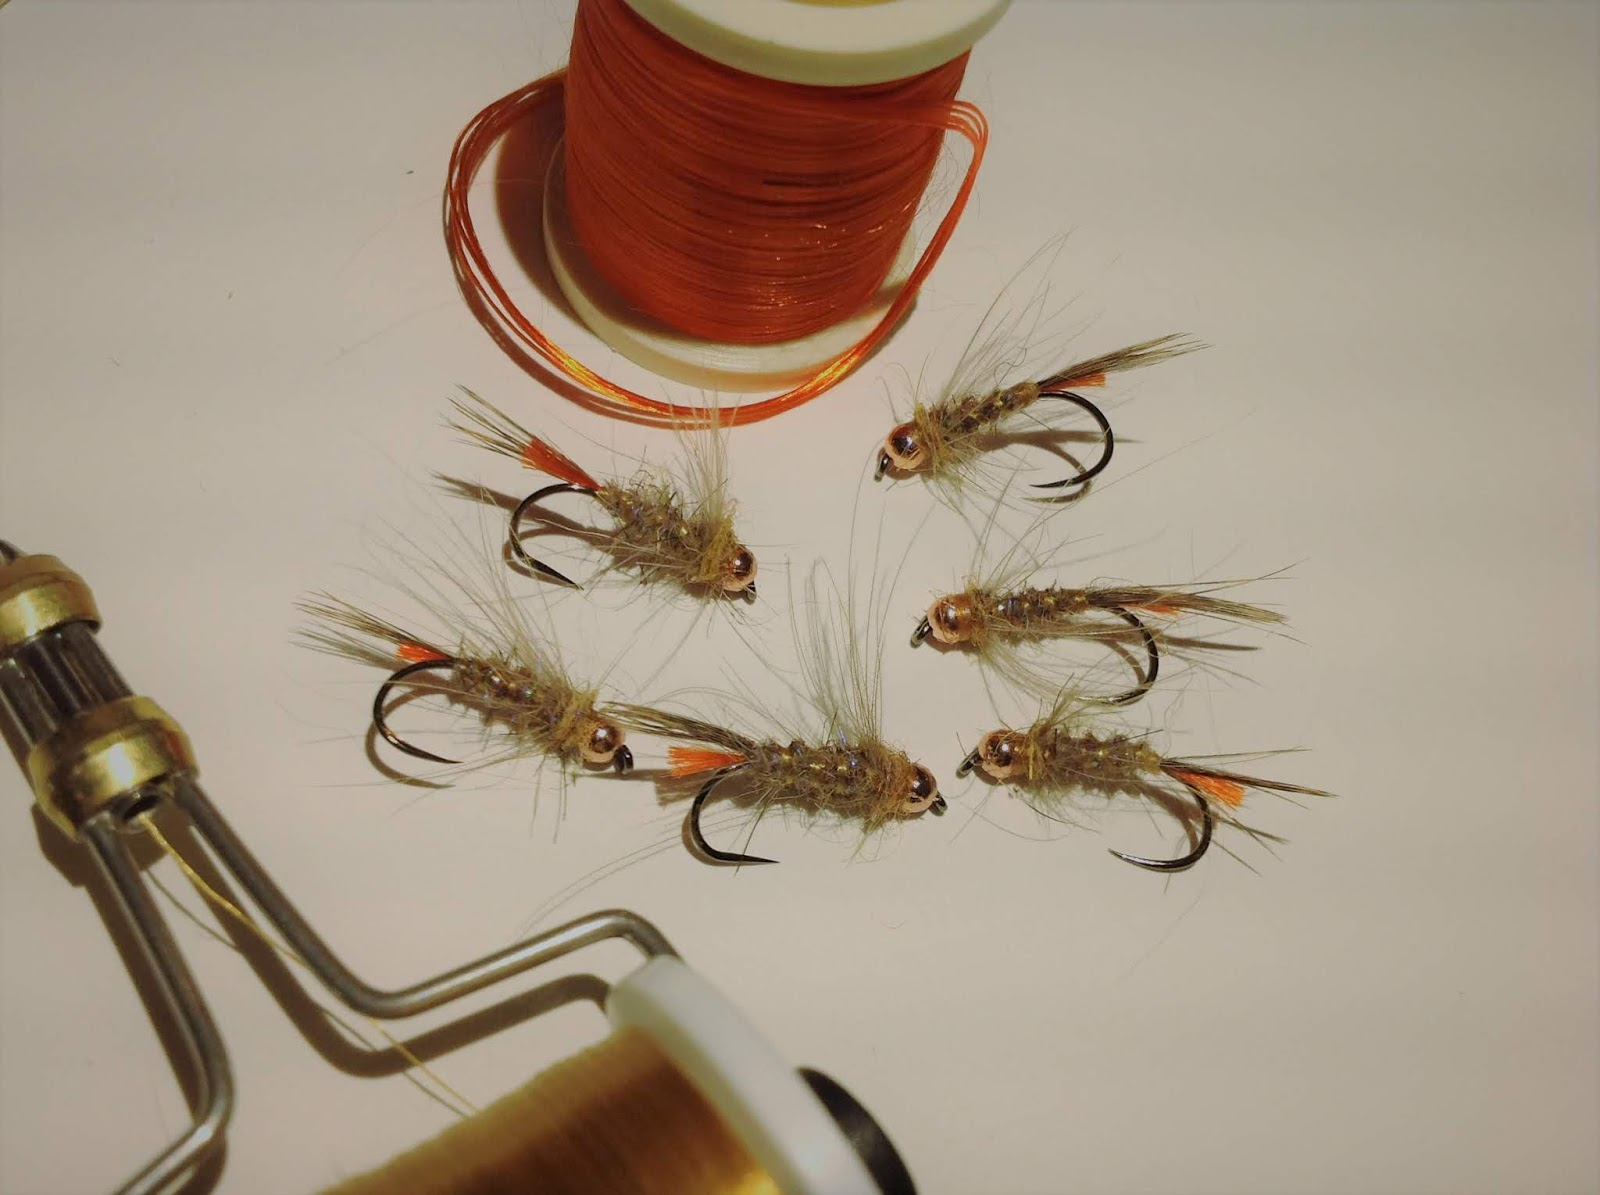 6 White Head Copper Squirrel nymphs in size #16 Great for  Euro nymphing.